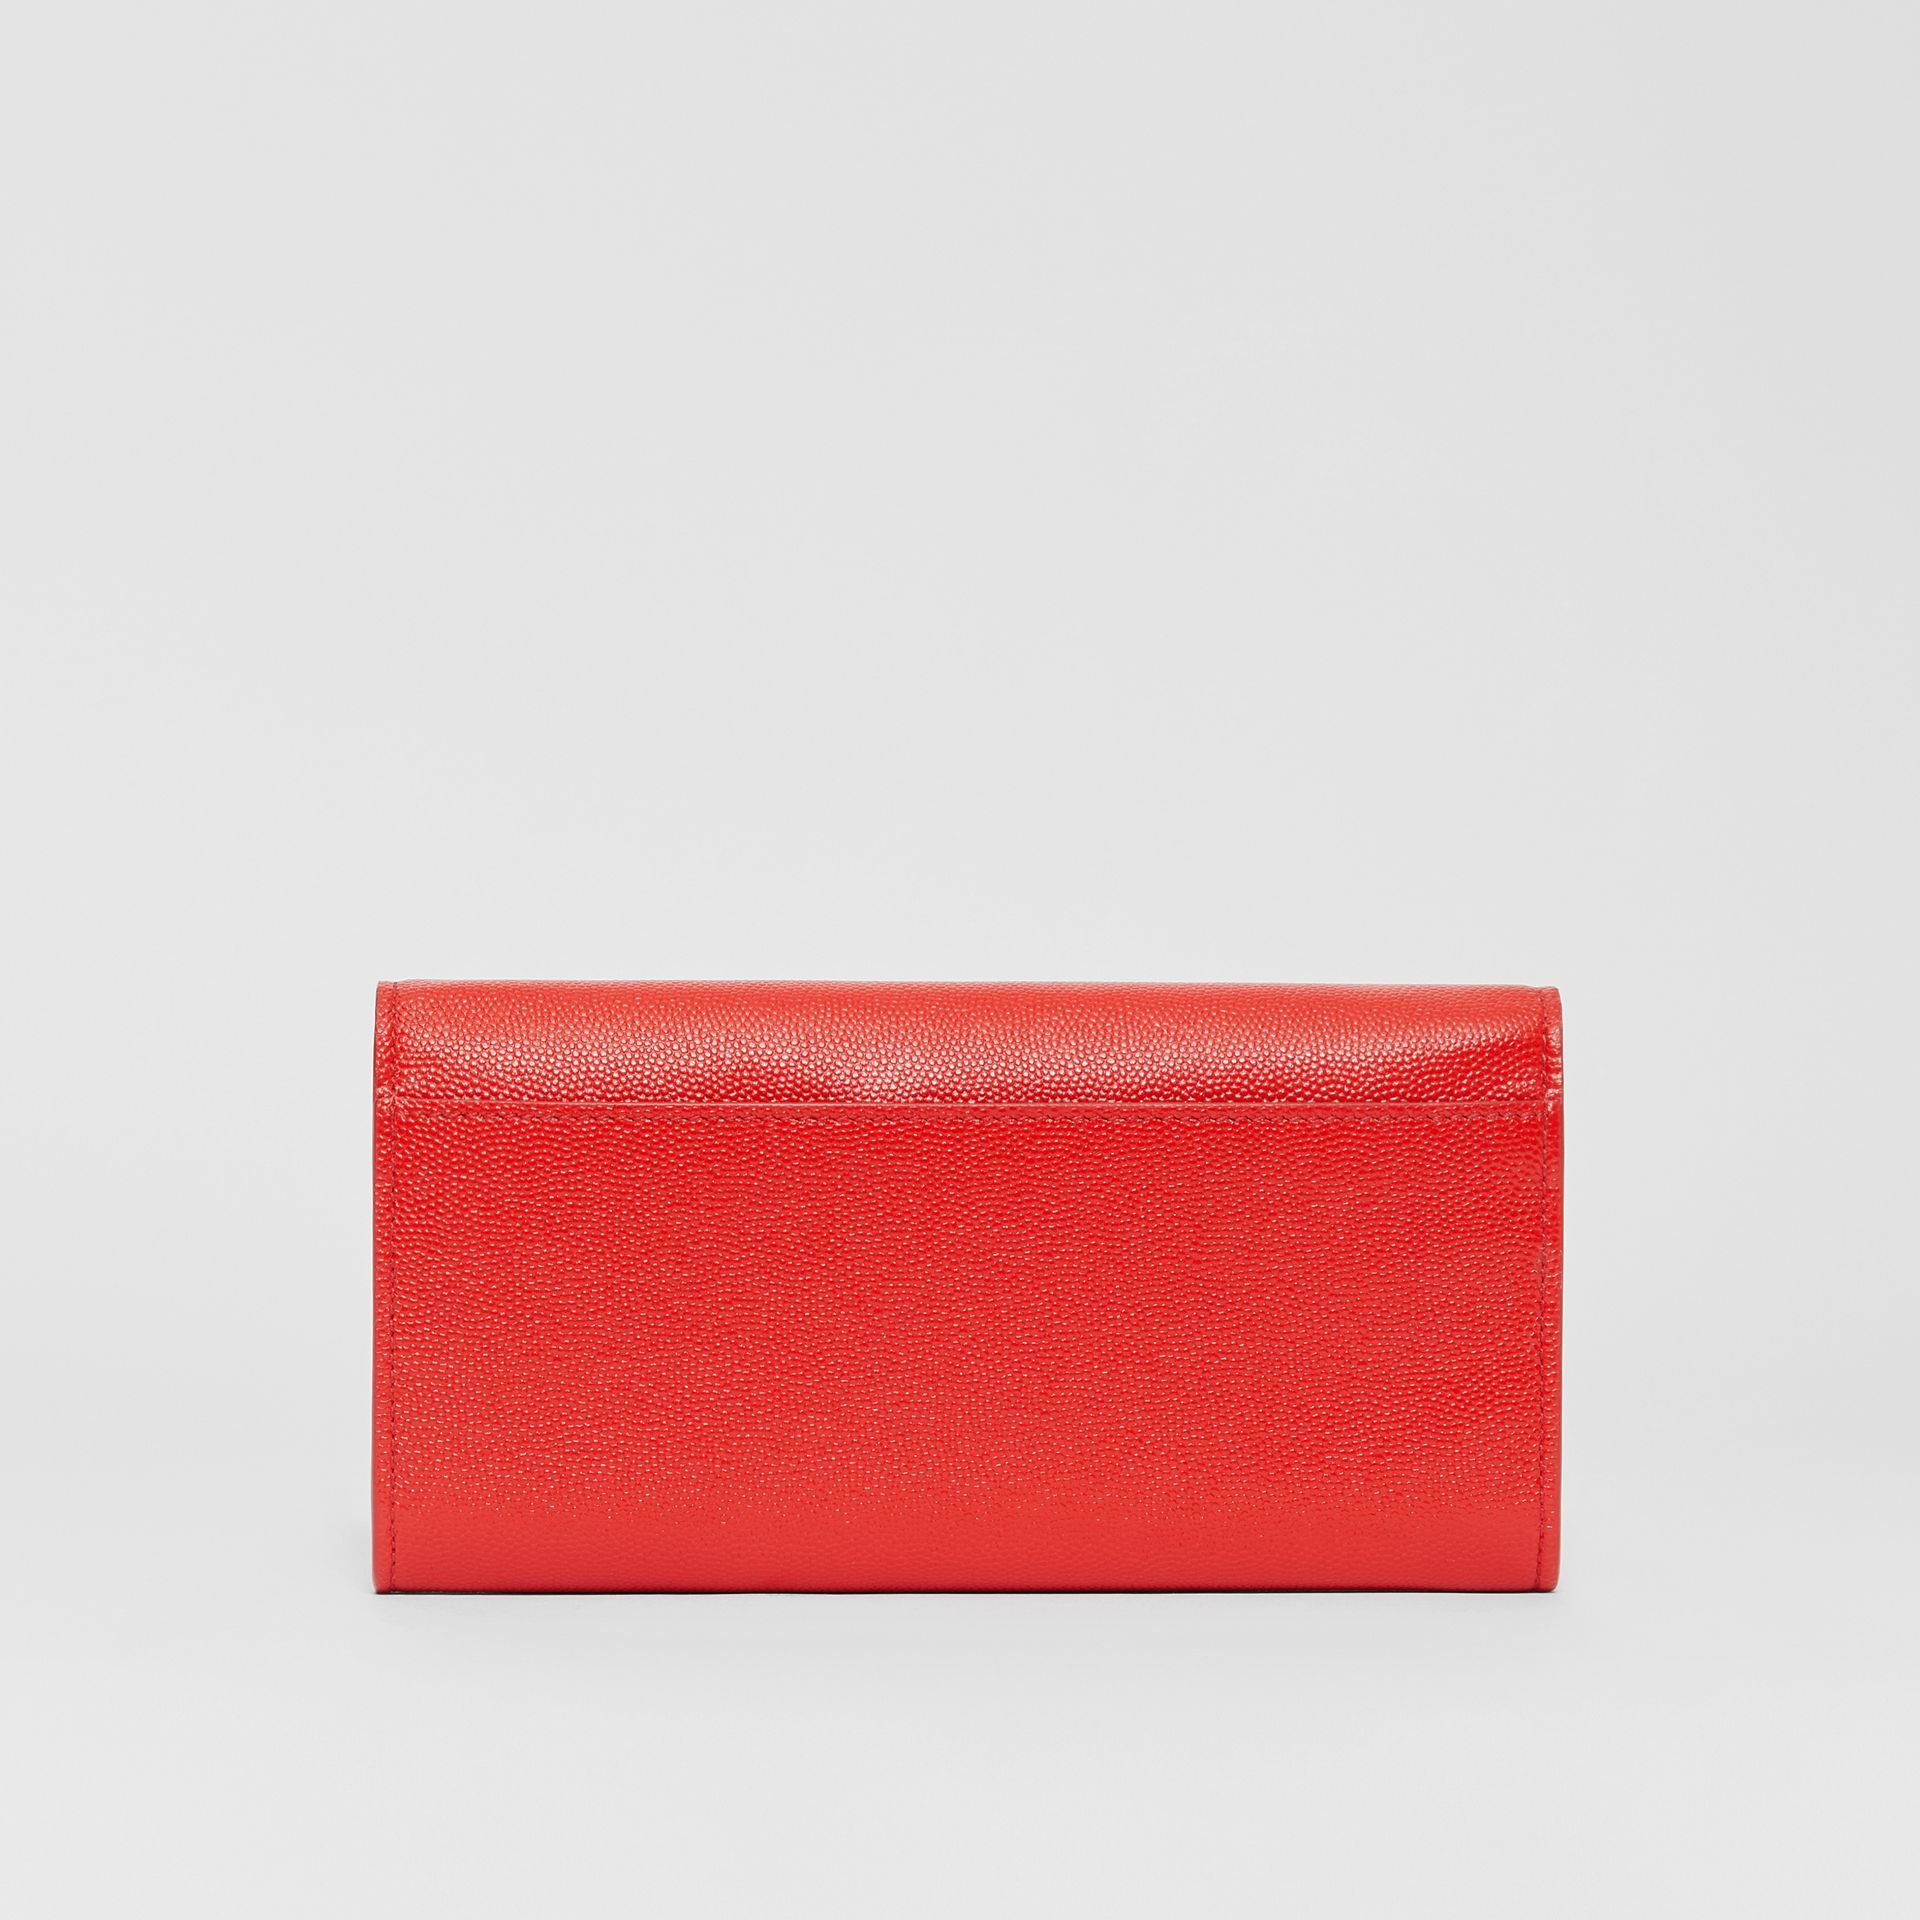 Monogram Motif Grainy Leather Continental Wallet in Bright Red - Women | Burberry Australia - gallery image 5